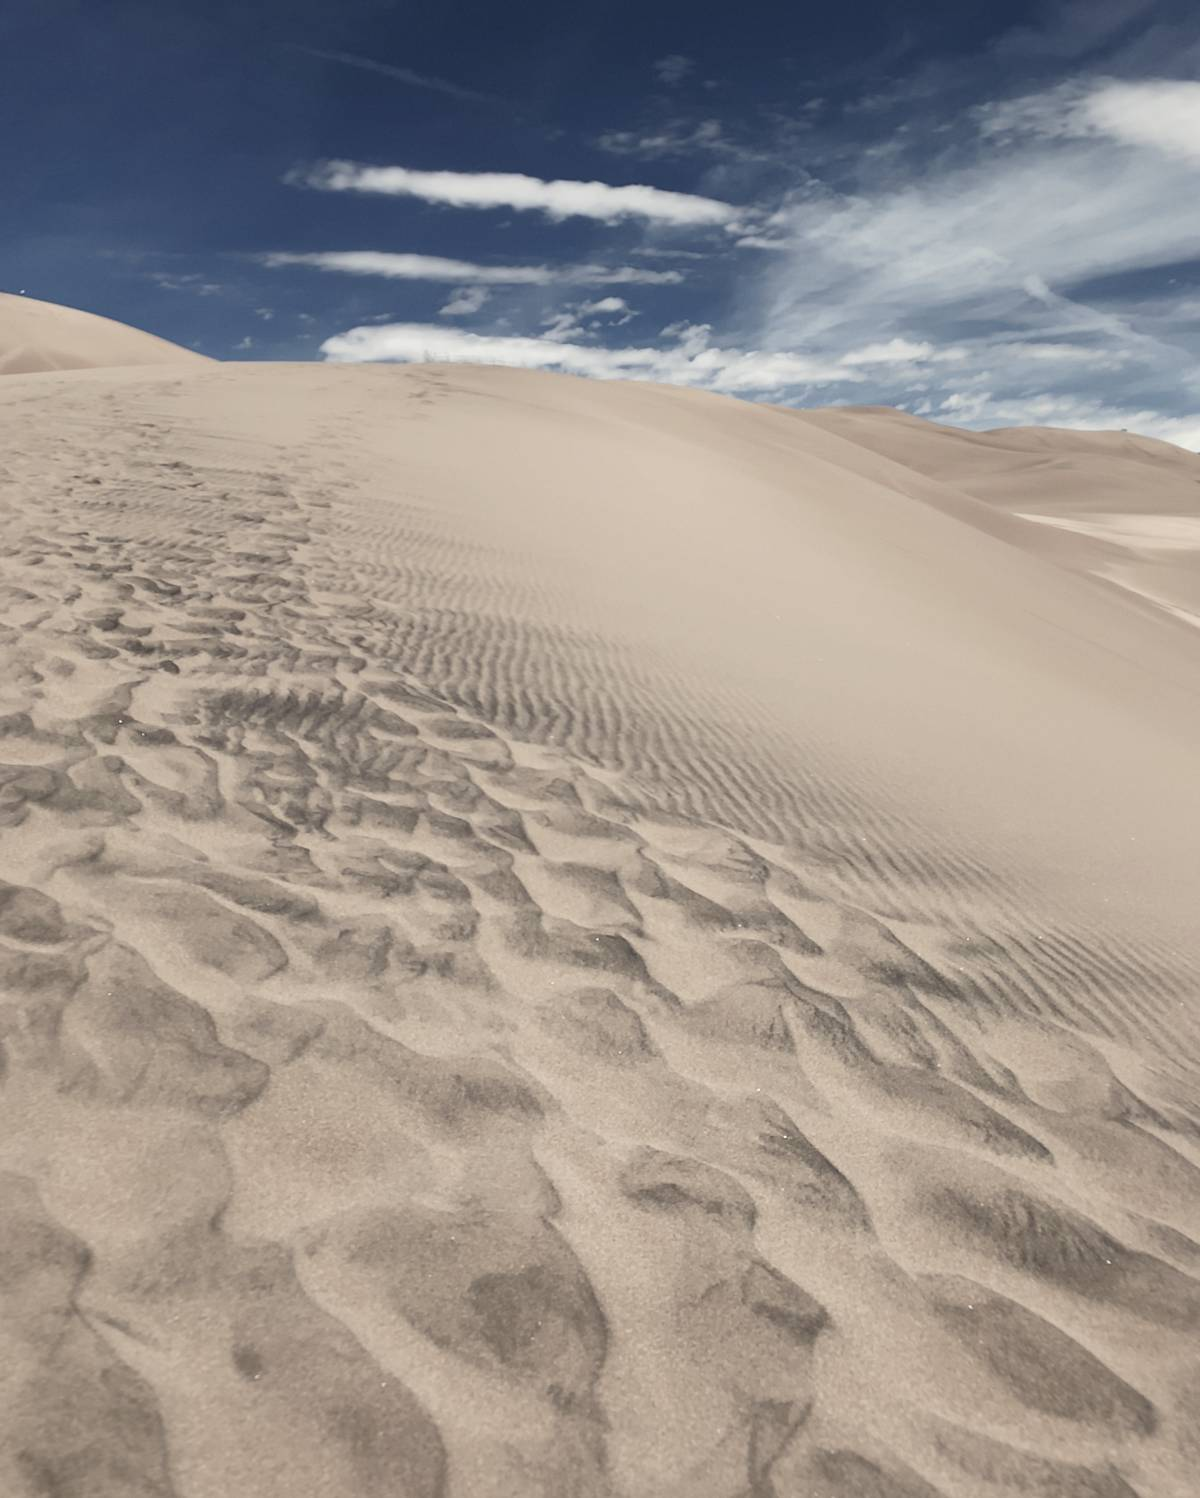 The footprints of people come and gone hiking on the sand dunes at the Great Sand Dunes National Park.